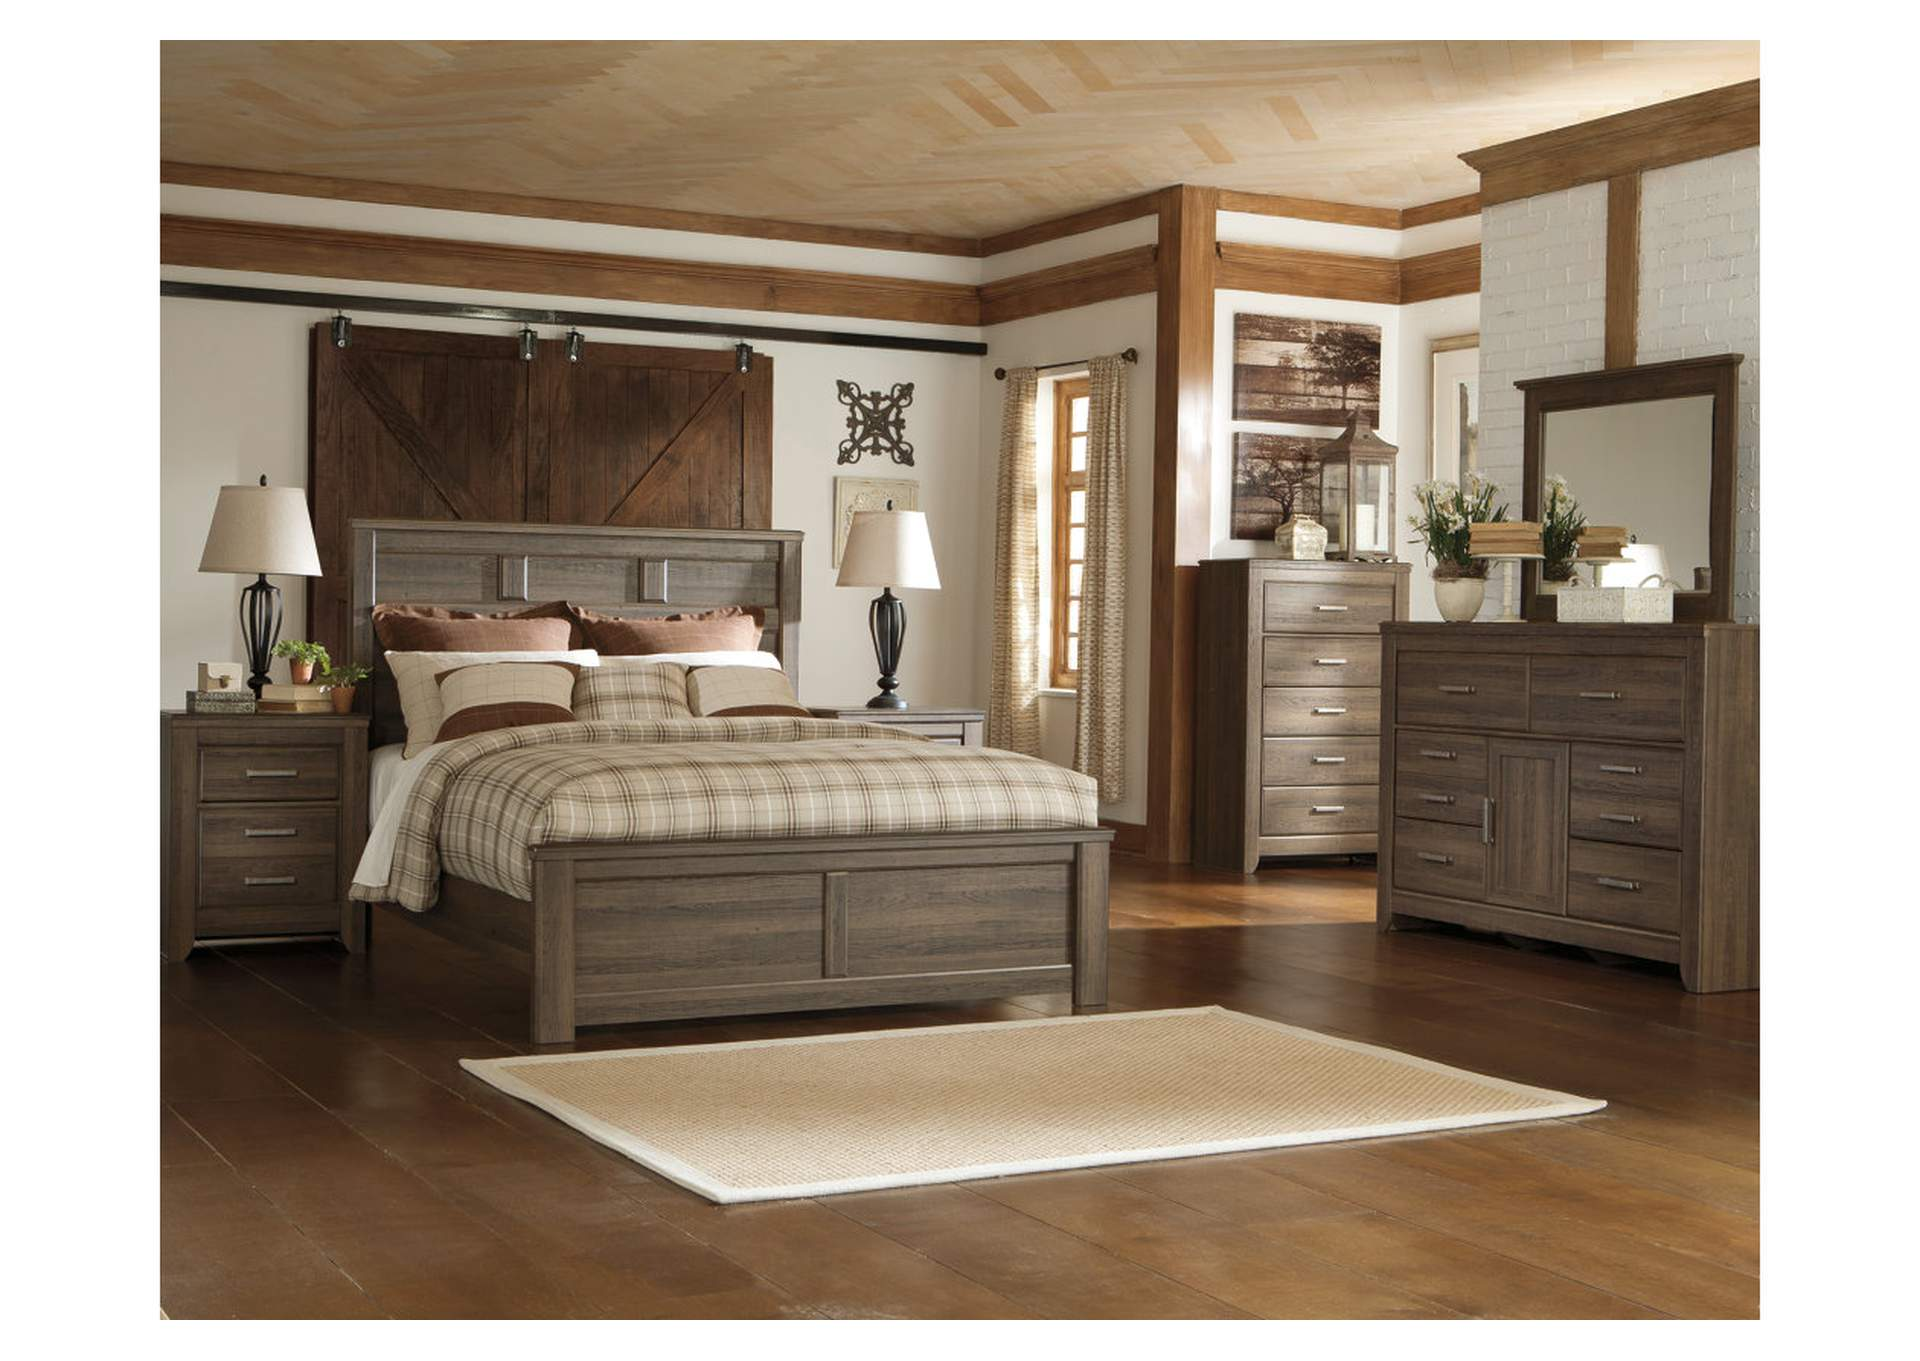 Juararo Queen Panel Bed w/Dresser, Mirror, Drawer Chest & Nightstand,Signature Design By Ashley